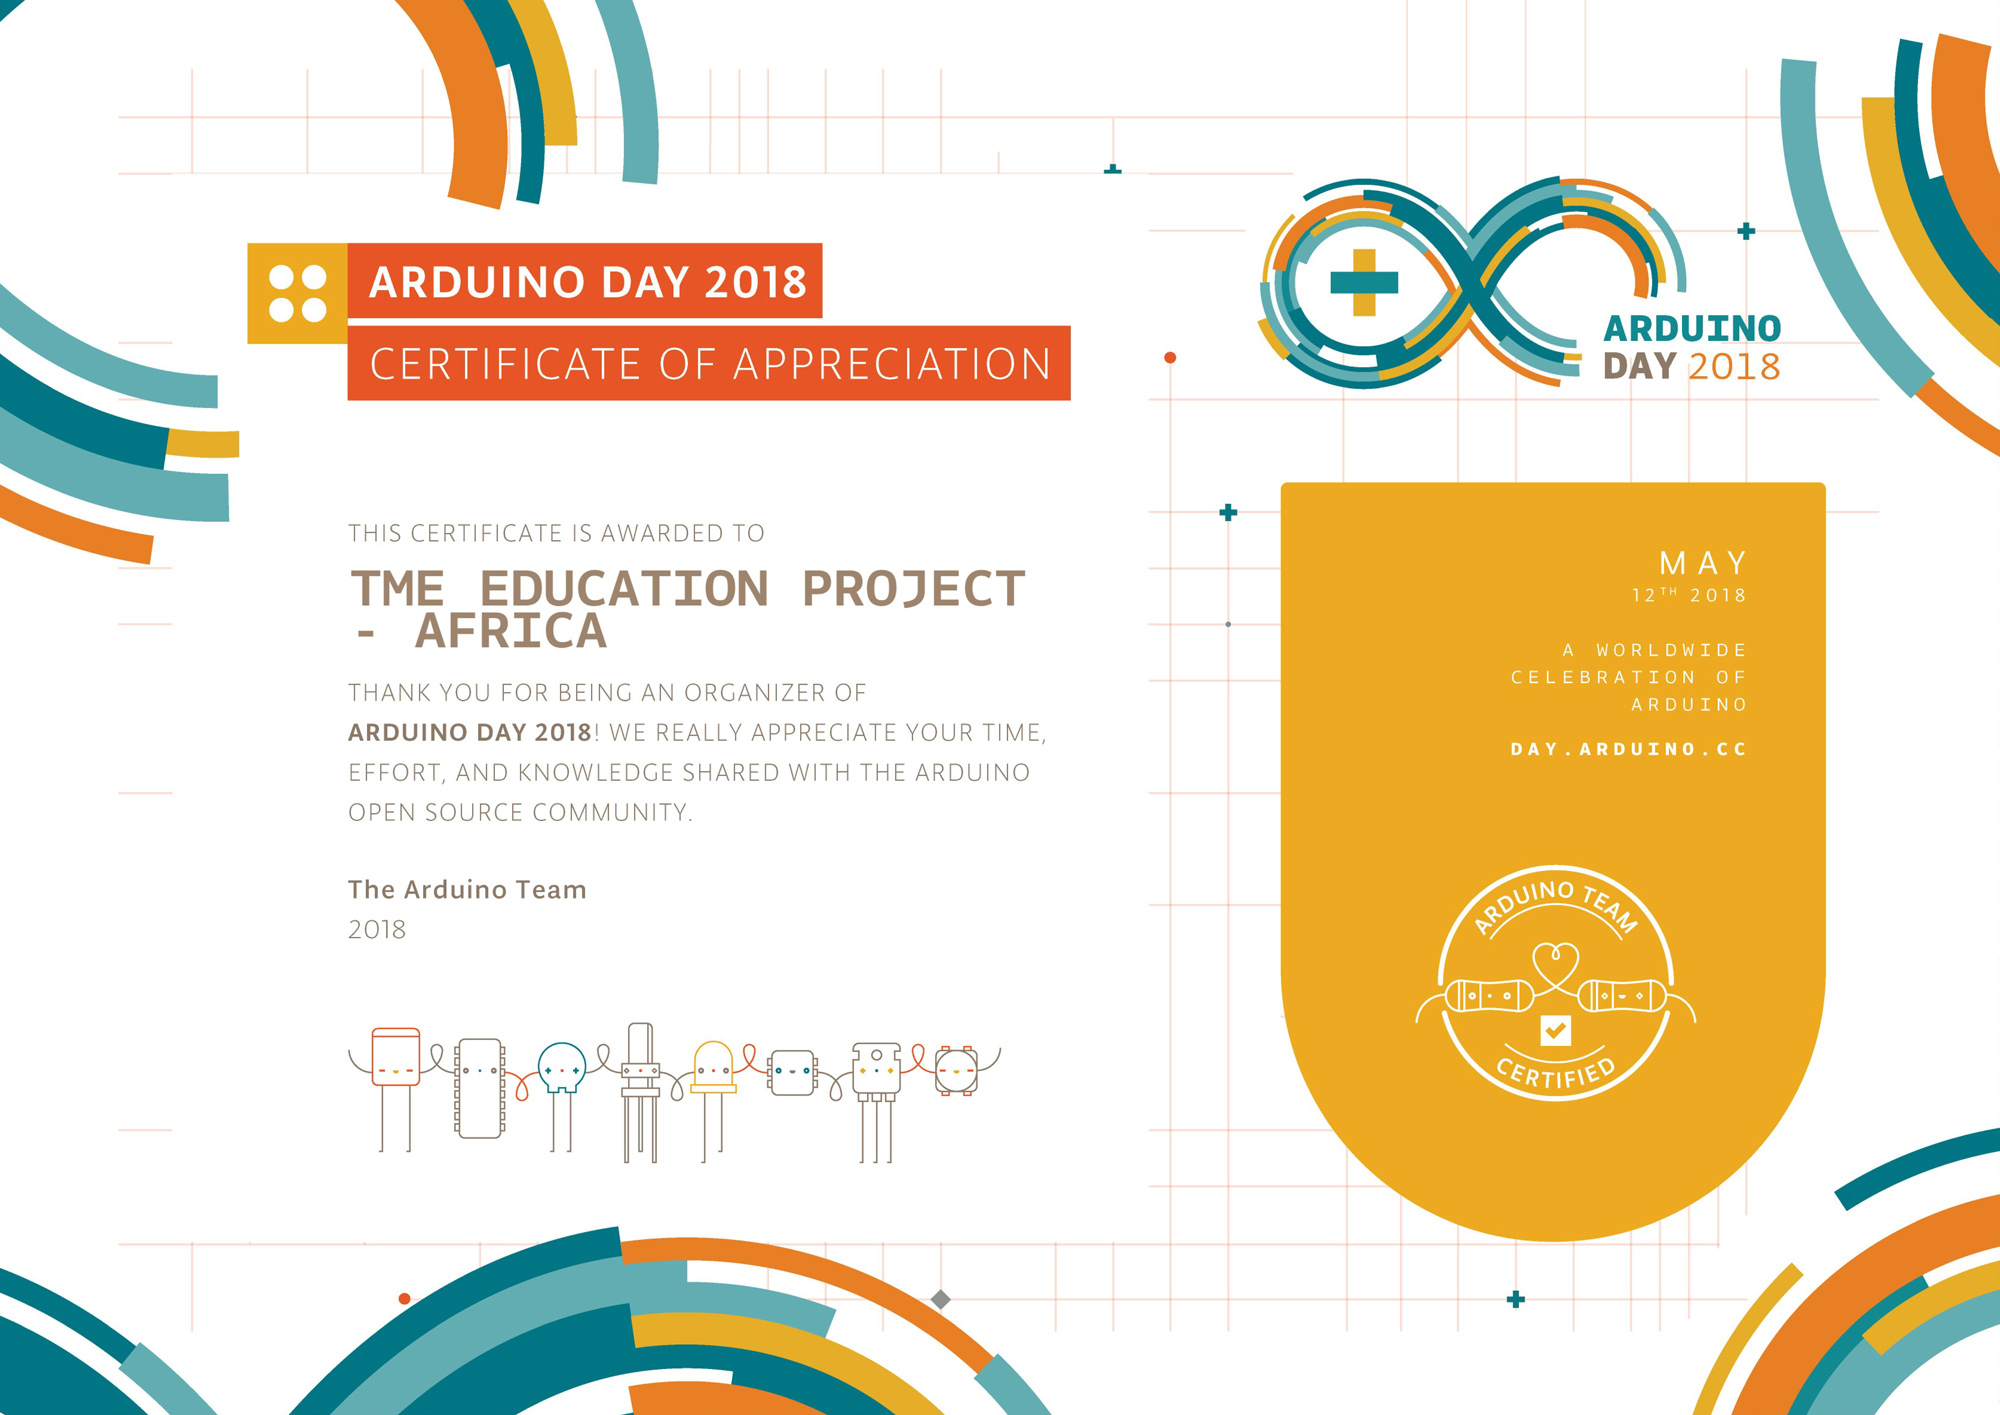 Adruino Day 2018 celebrations in Tanzania!